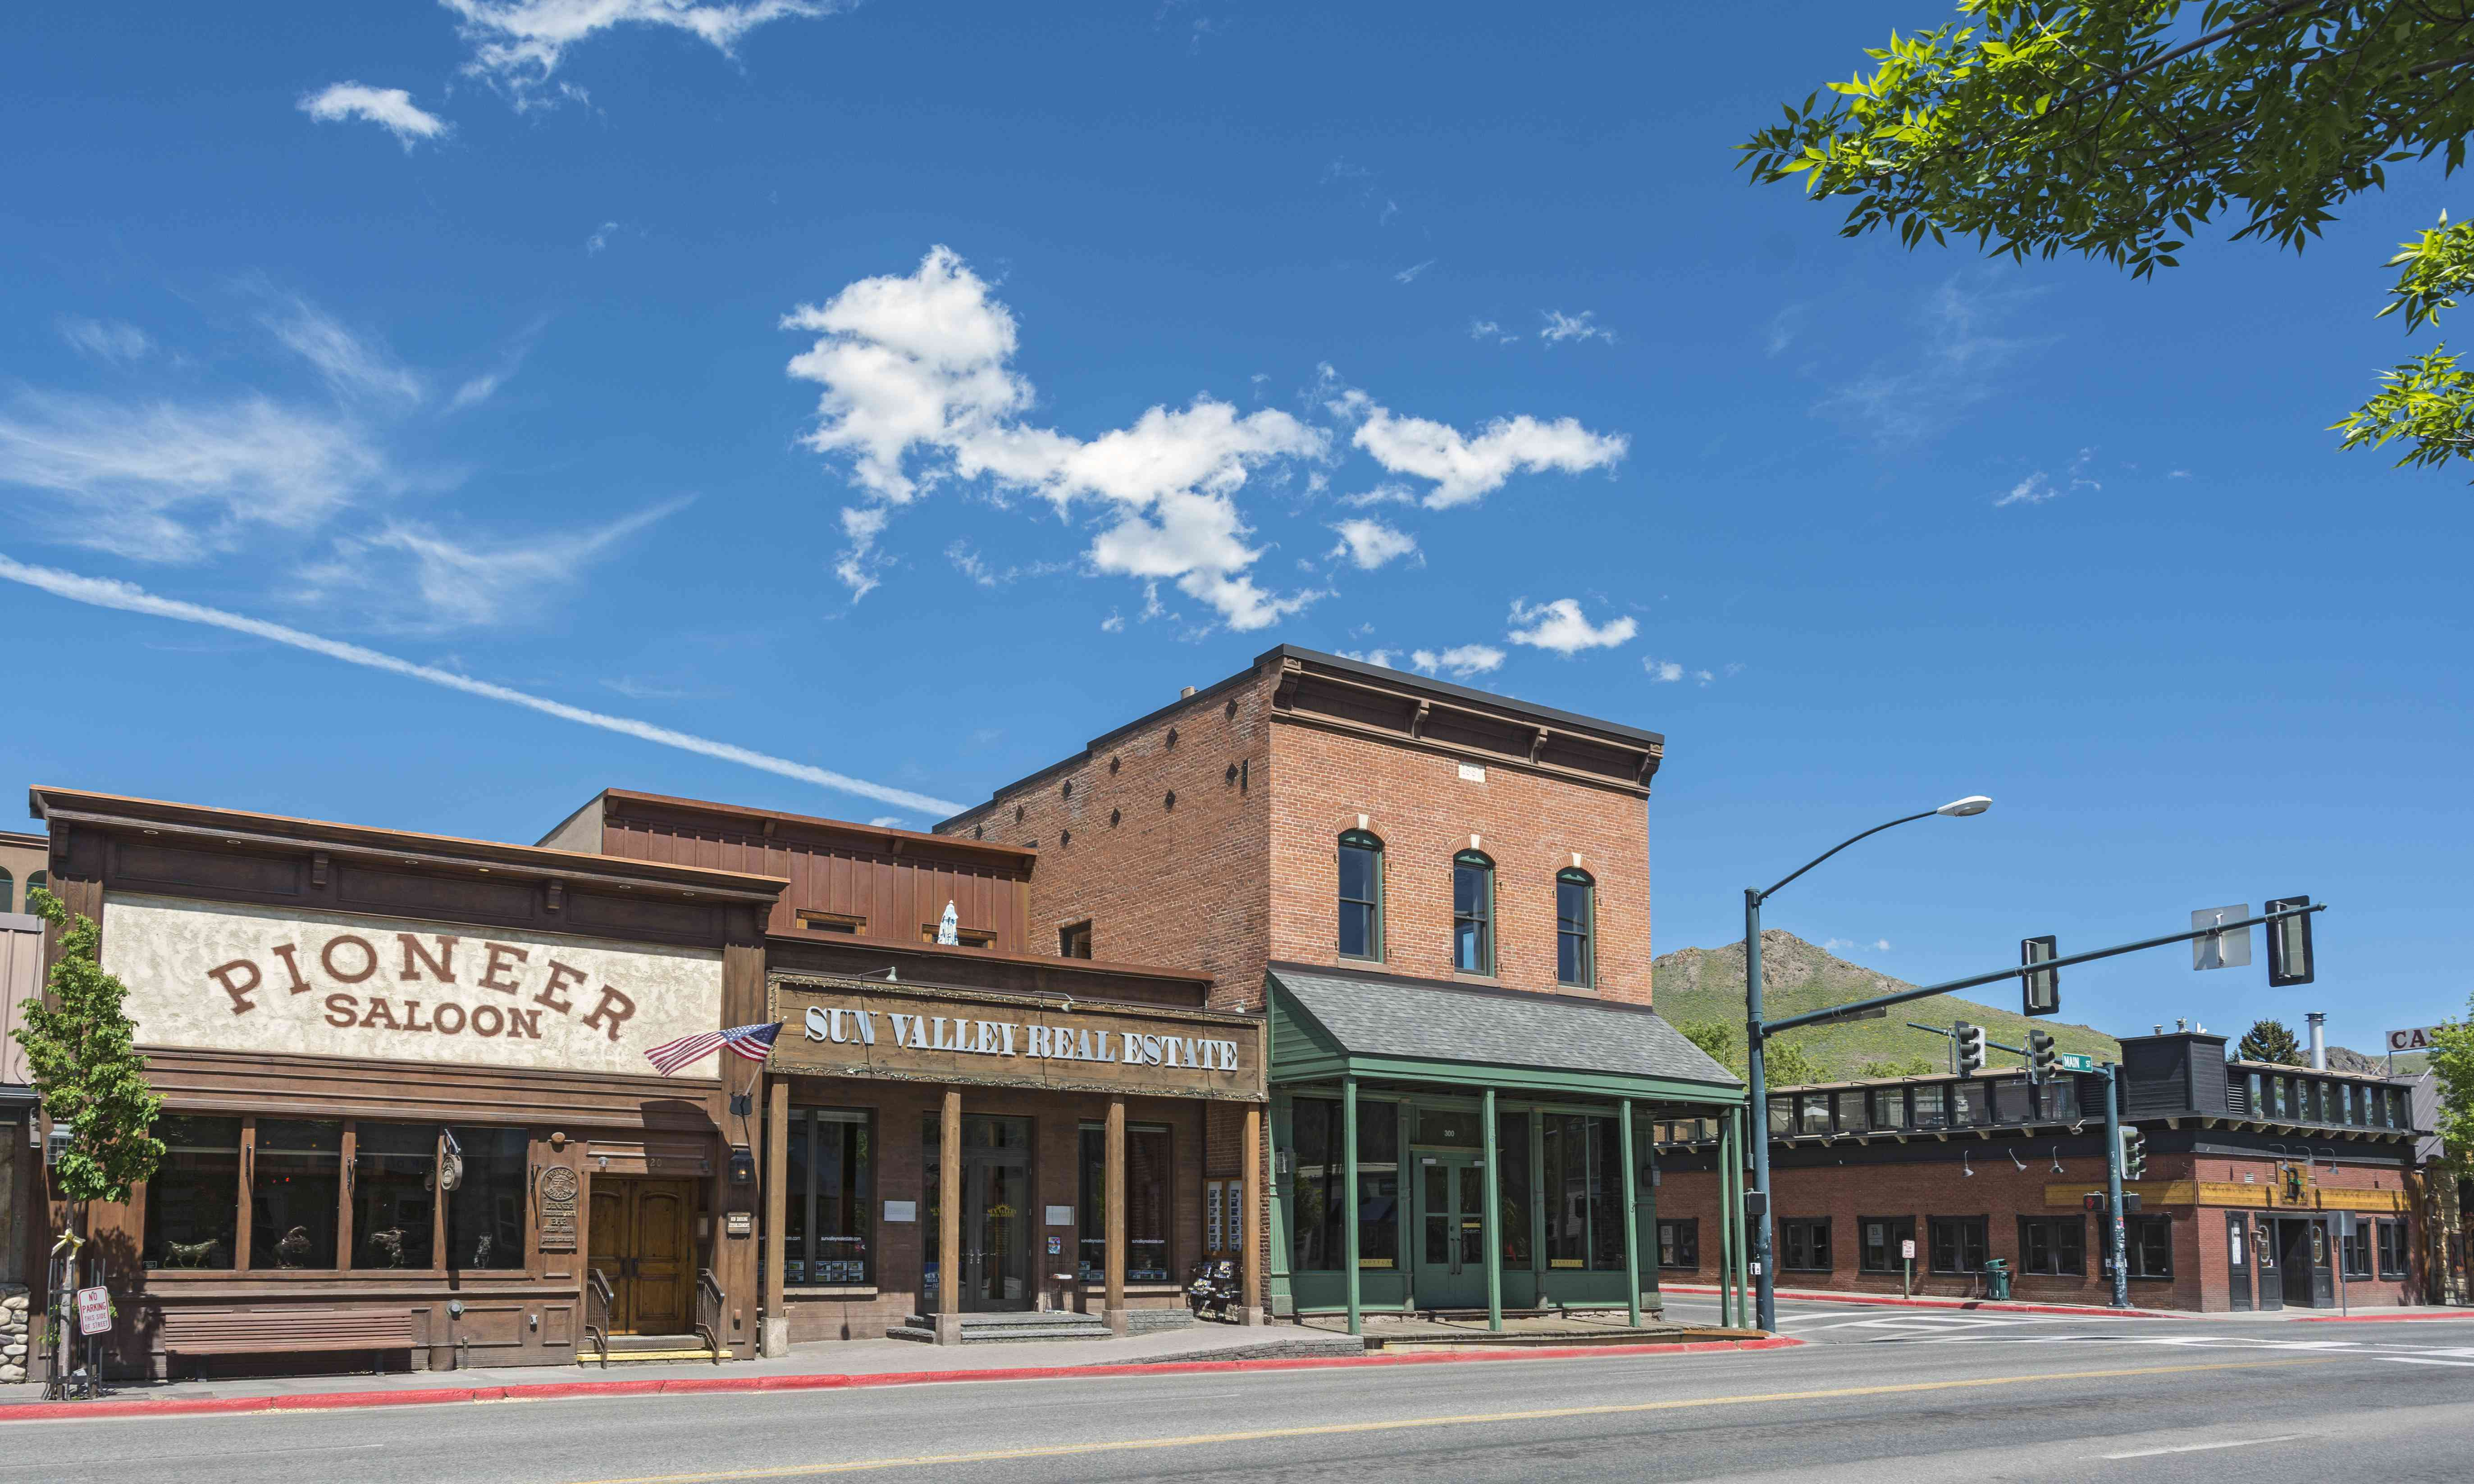 old-west style buildings on an empty street in ketchum, idaho